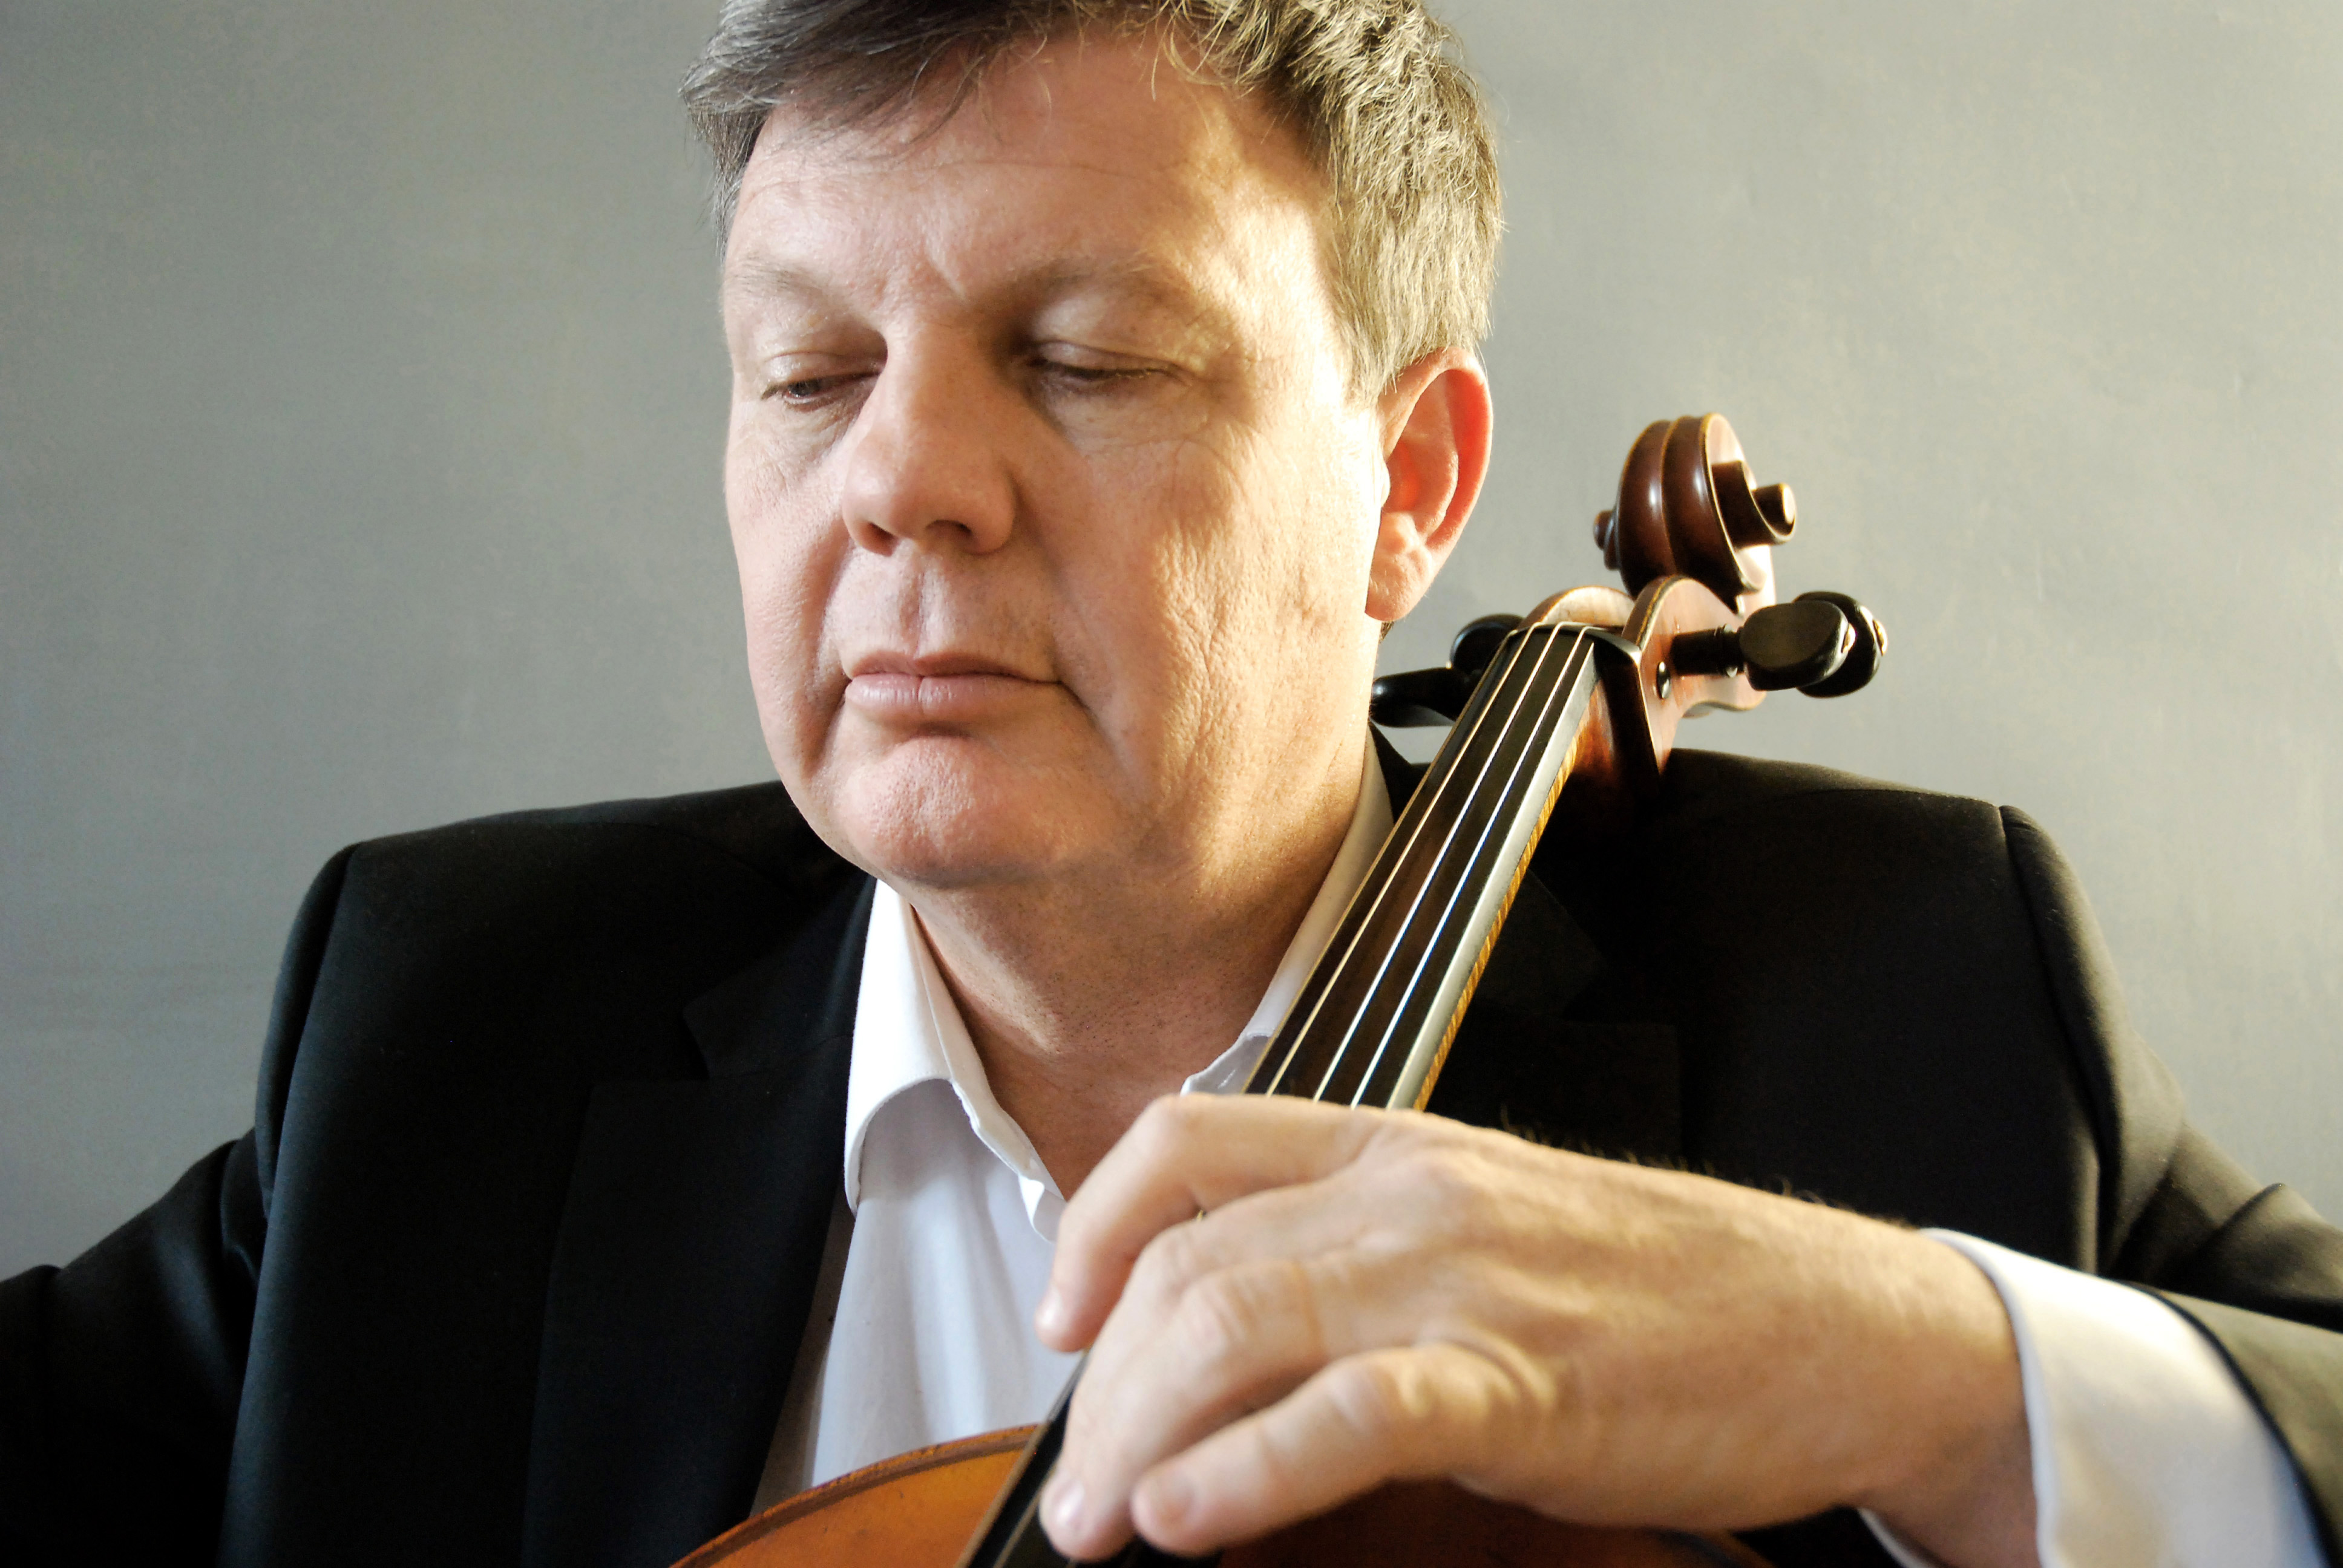 Violoncelle Solo Jean Eric Thirault